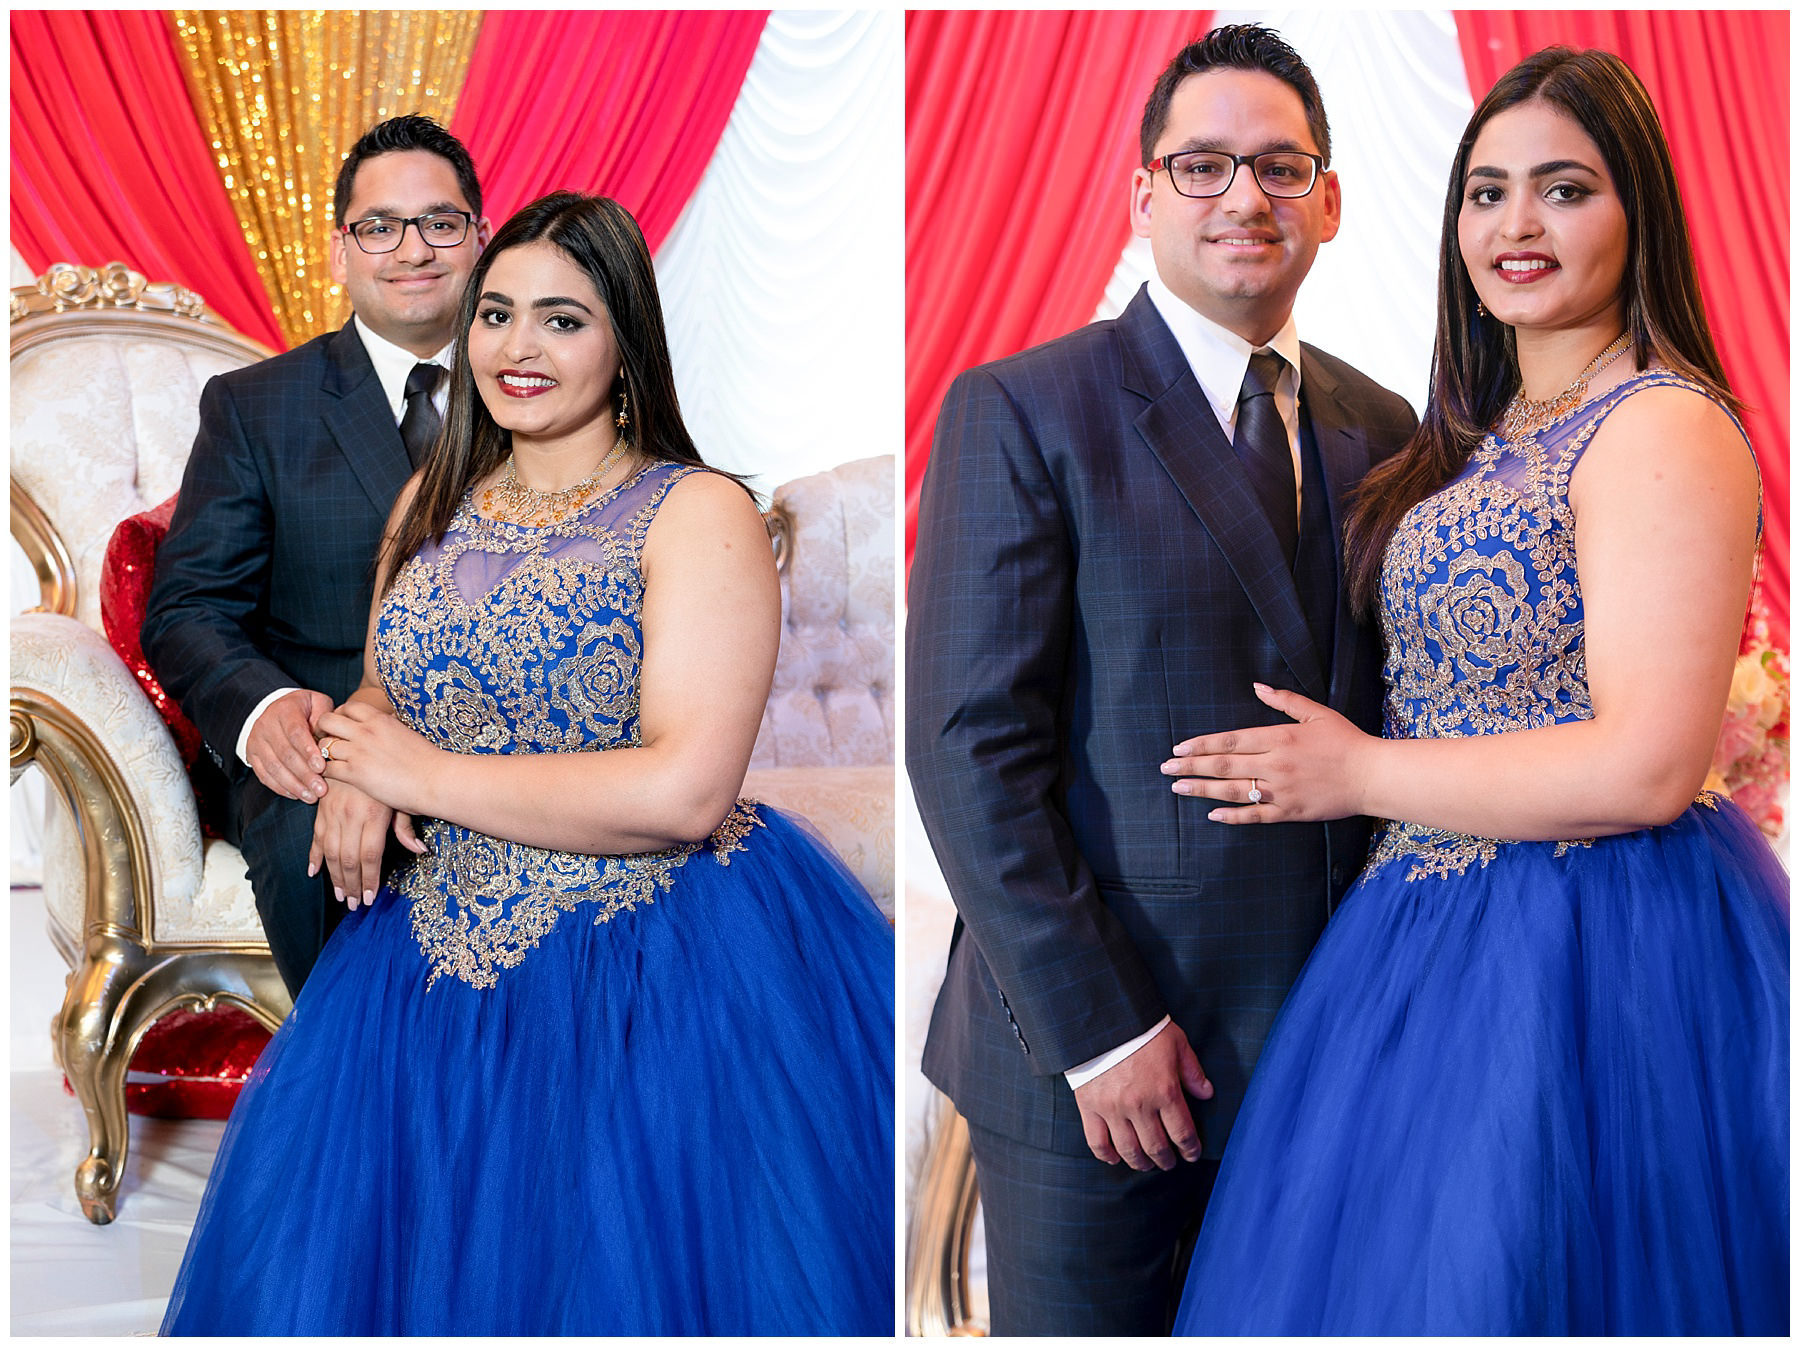 royal-alberts-palace-fords-nj-engagement-vidushi-ankush-8.jpg